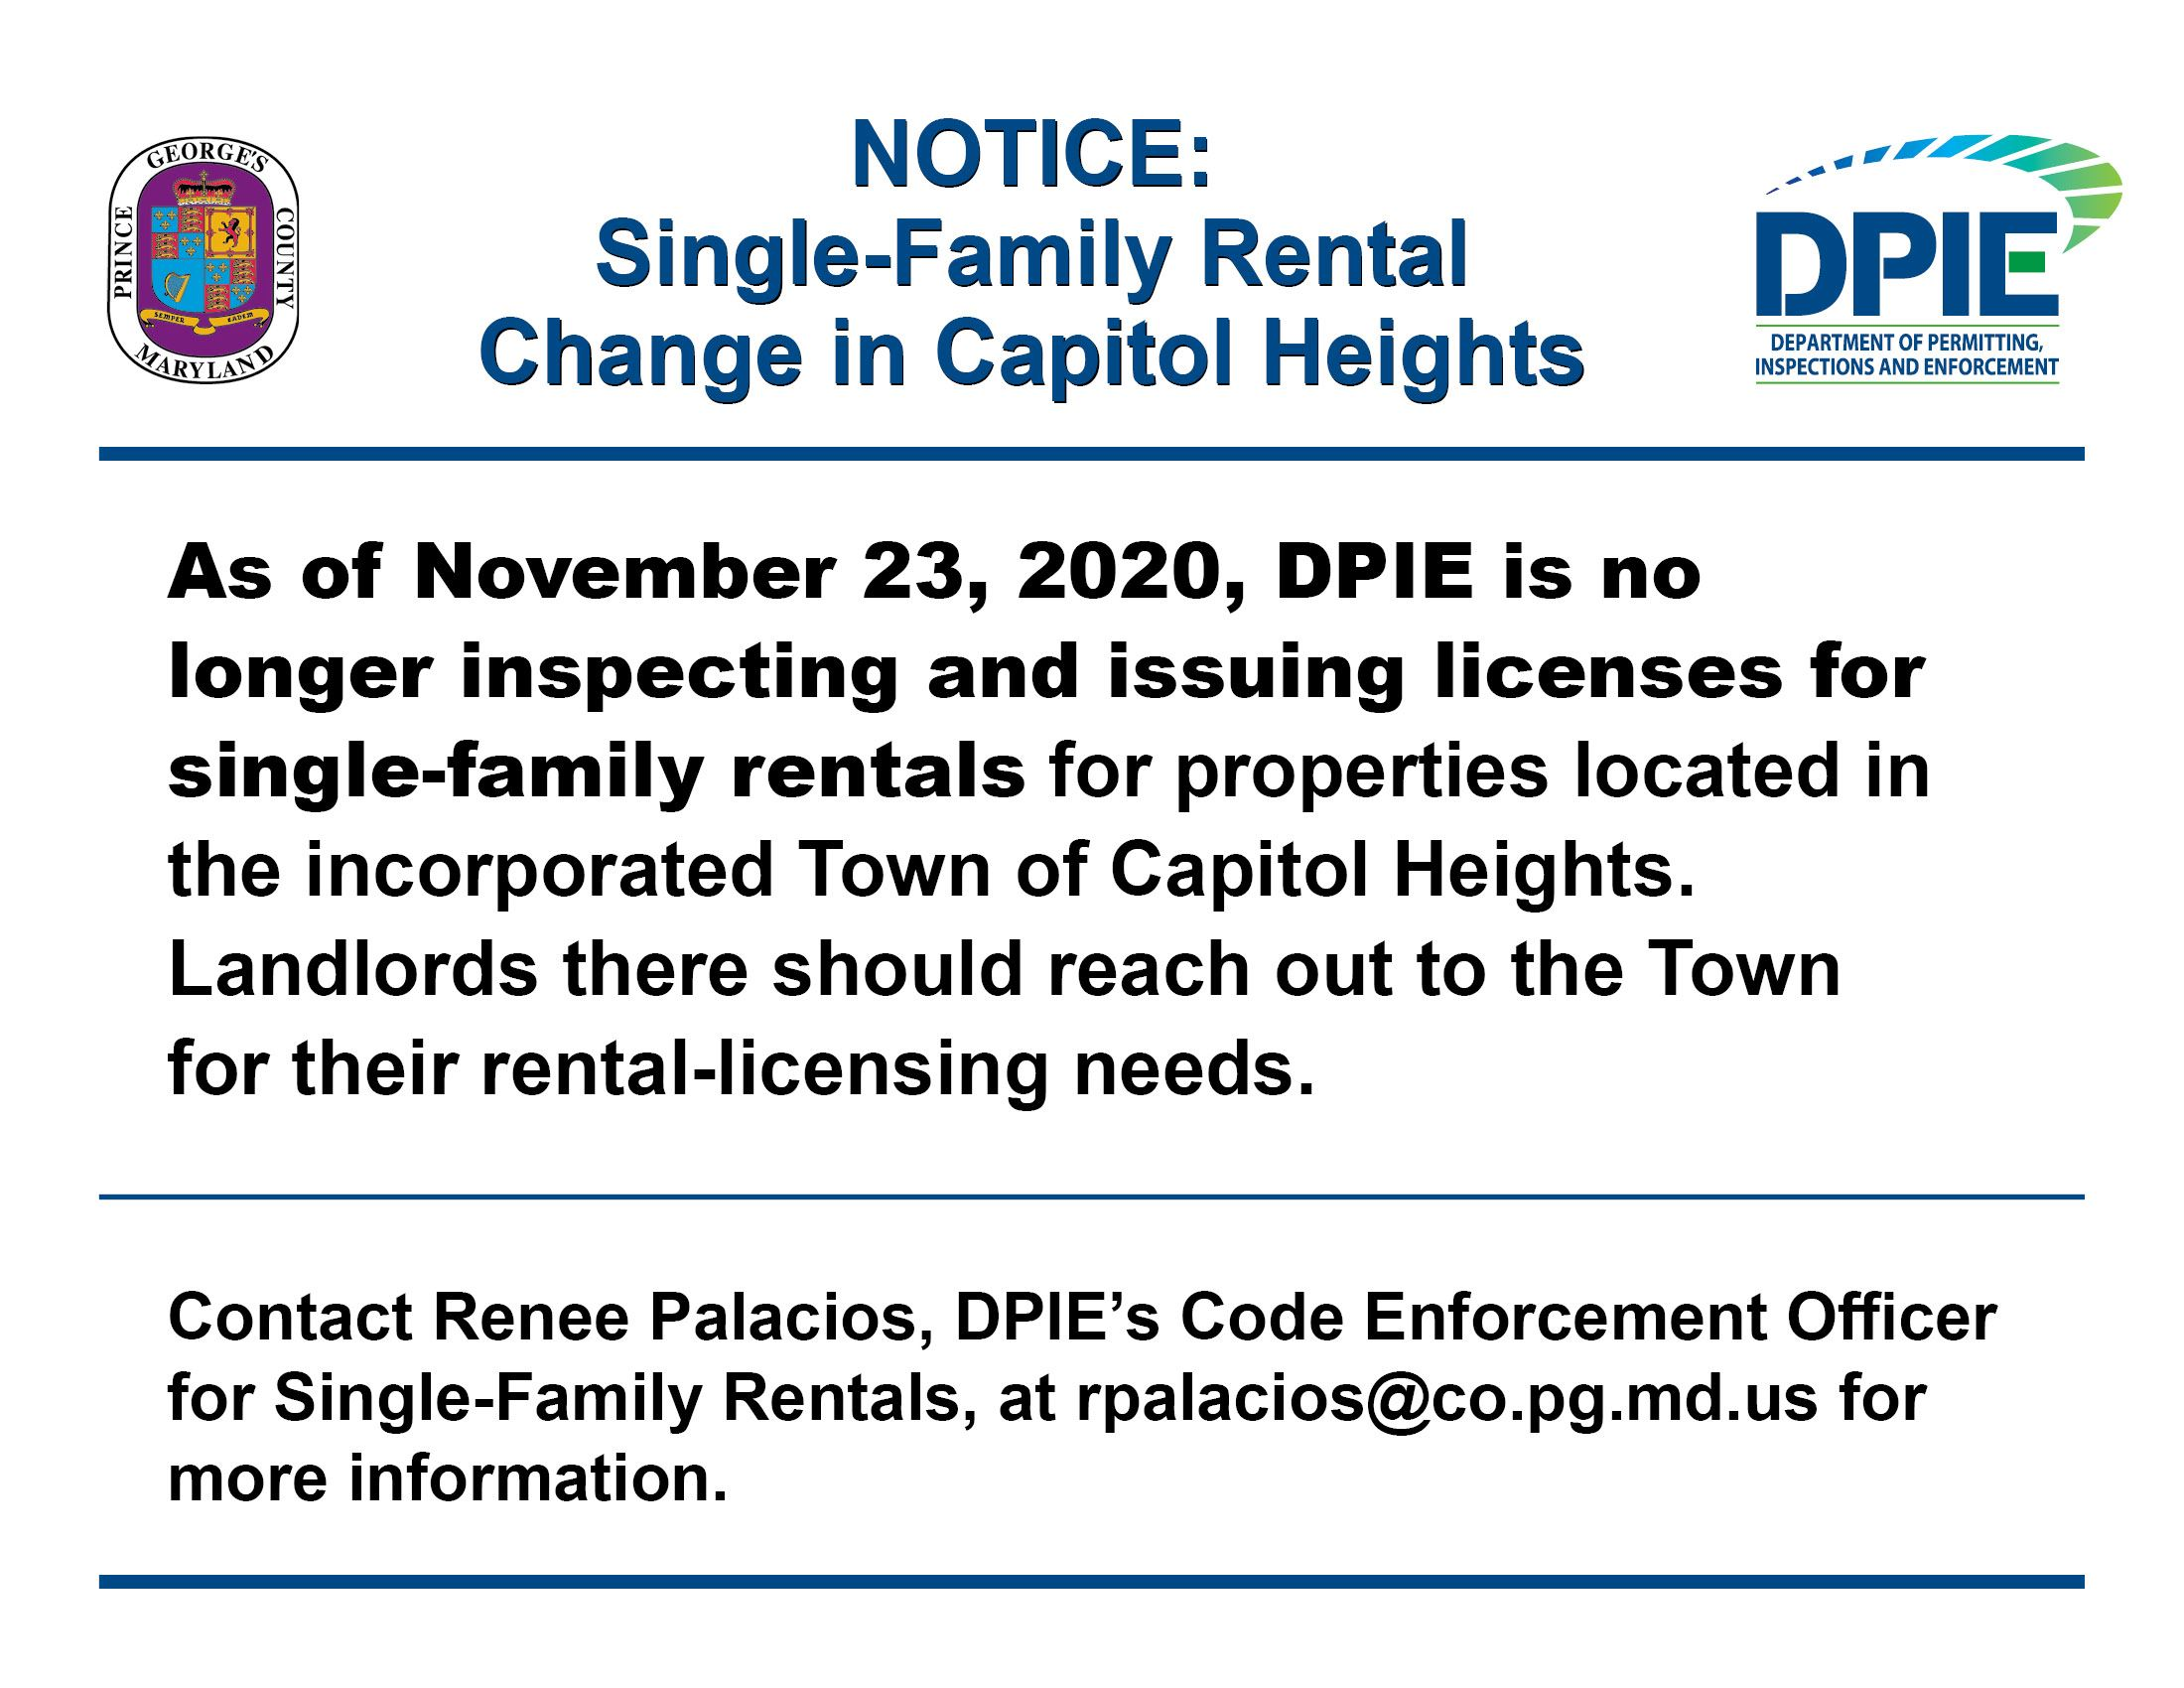 Single-Family Rental Change in Capitol Heights Notice